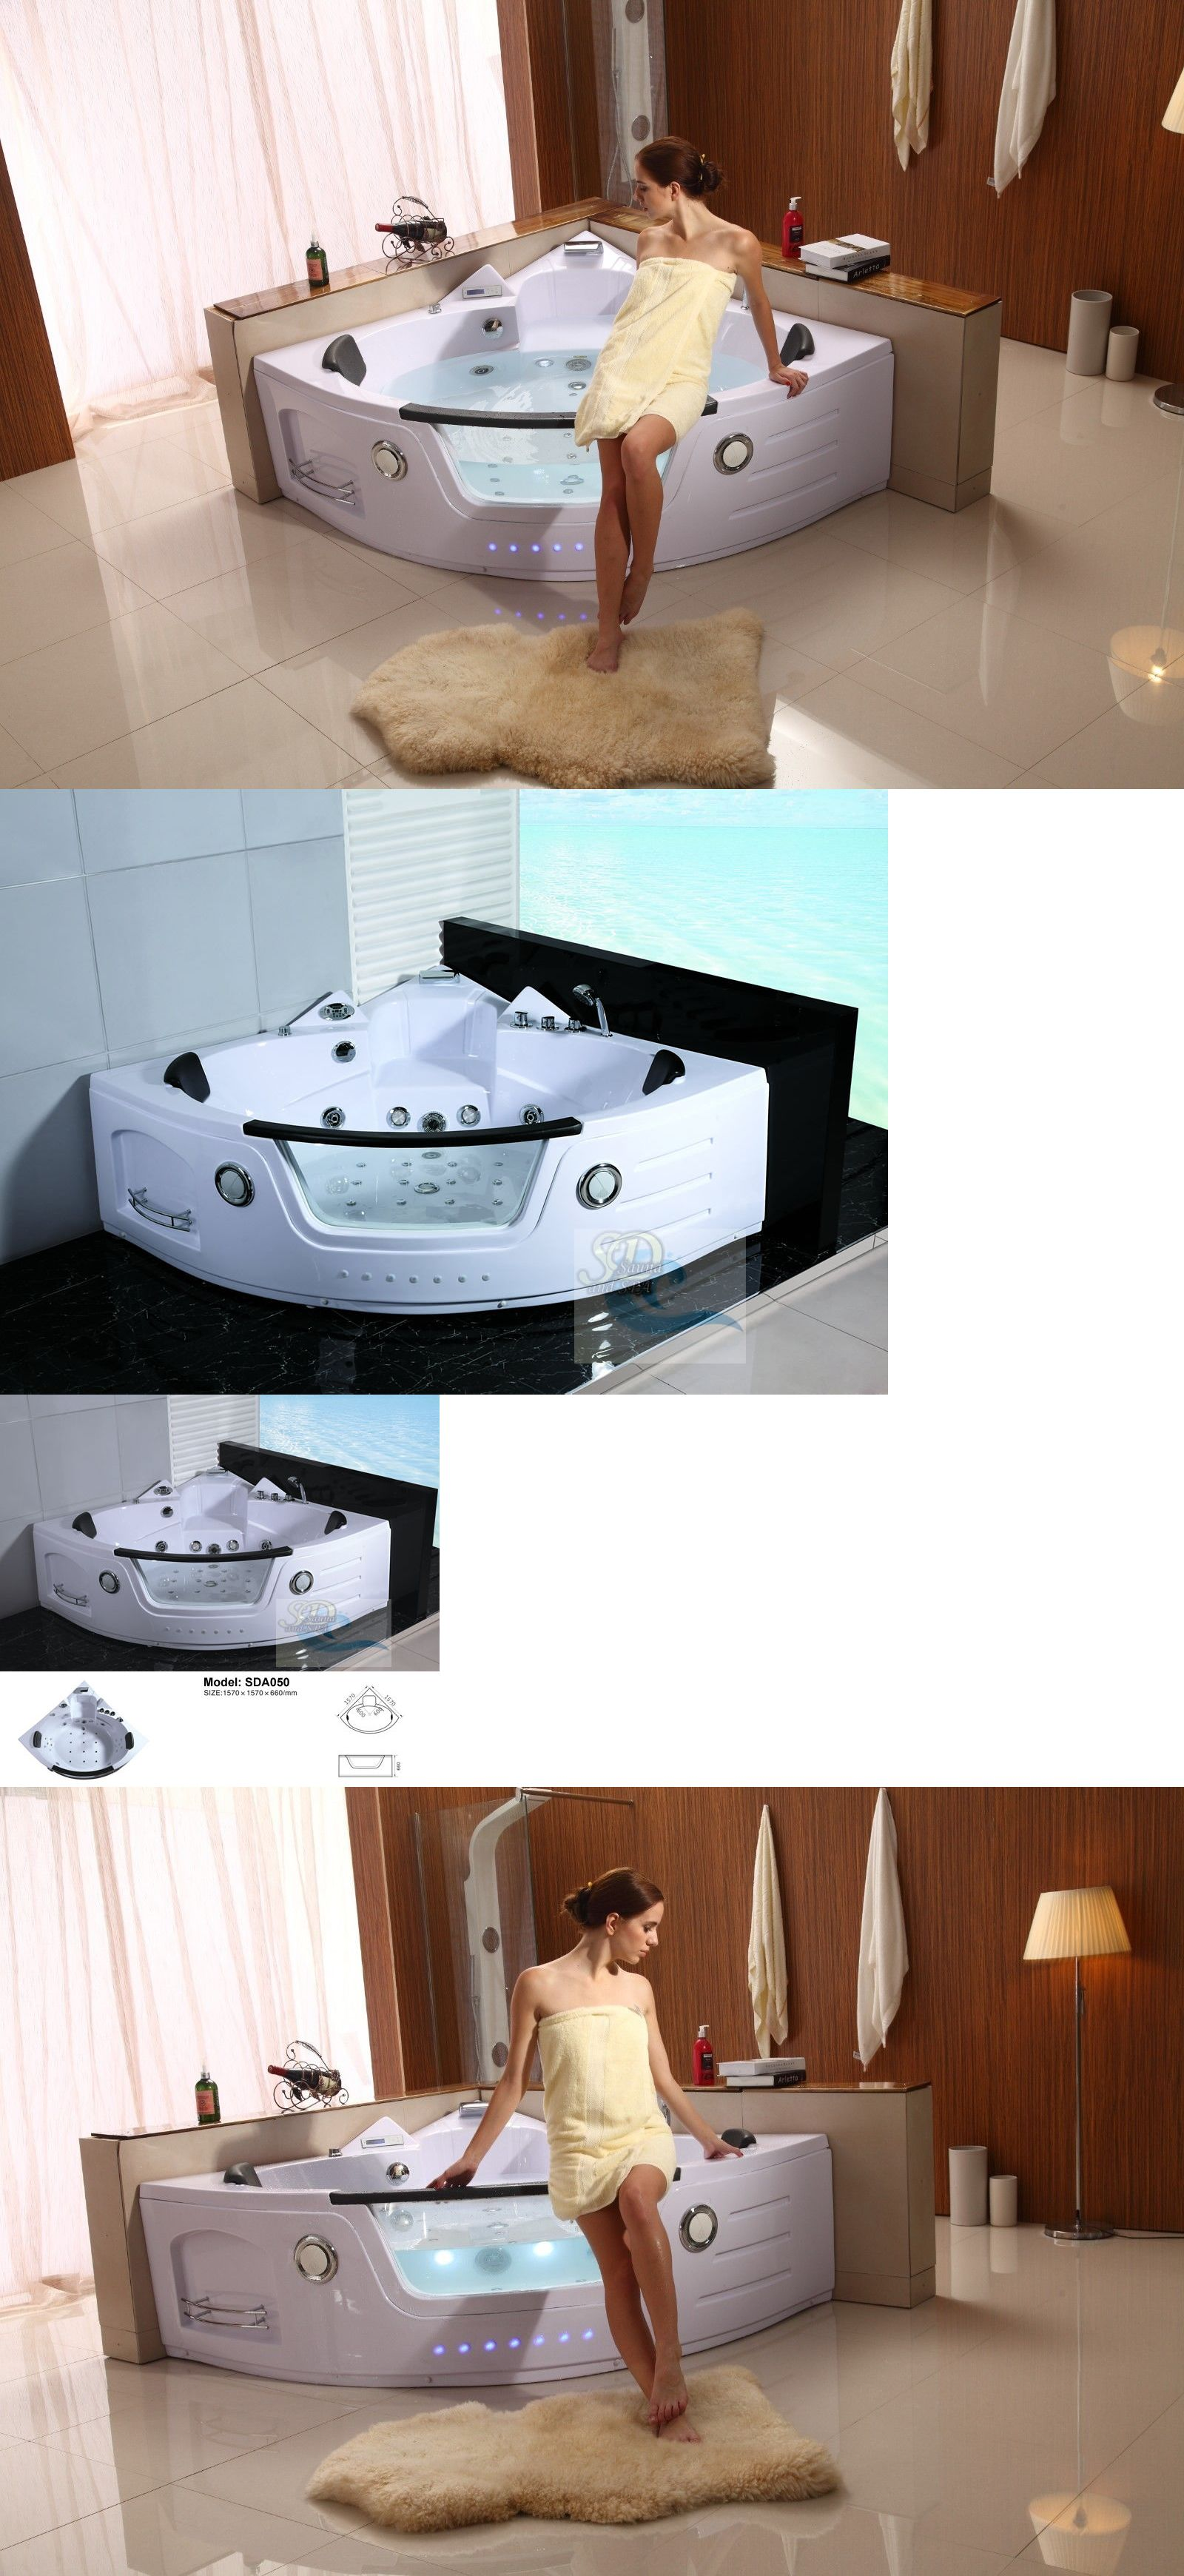 Jacuzzi Whirlpool Bathtubs 42025 New 2 Person Jacuzzi Whirlpool Massage